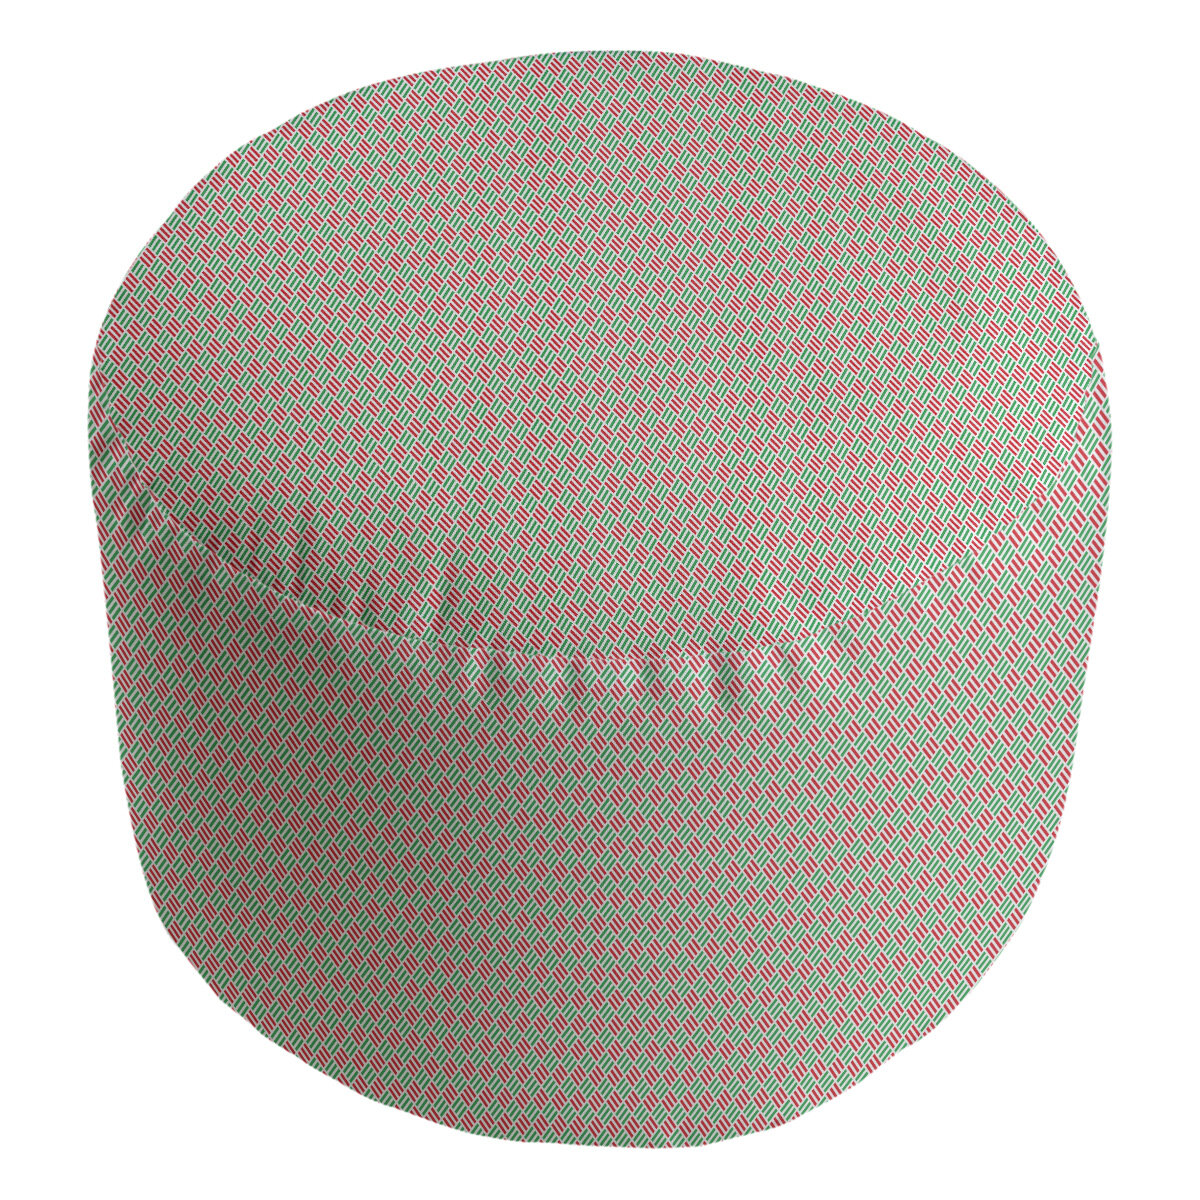 East Urban Home Festive Hol Diamonds Pouf Wayfair